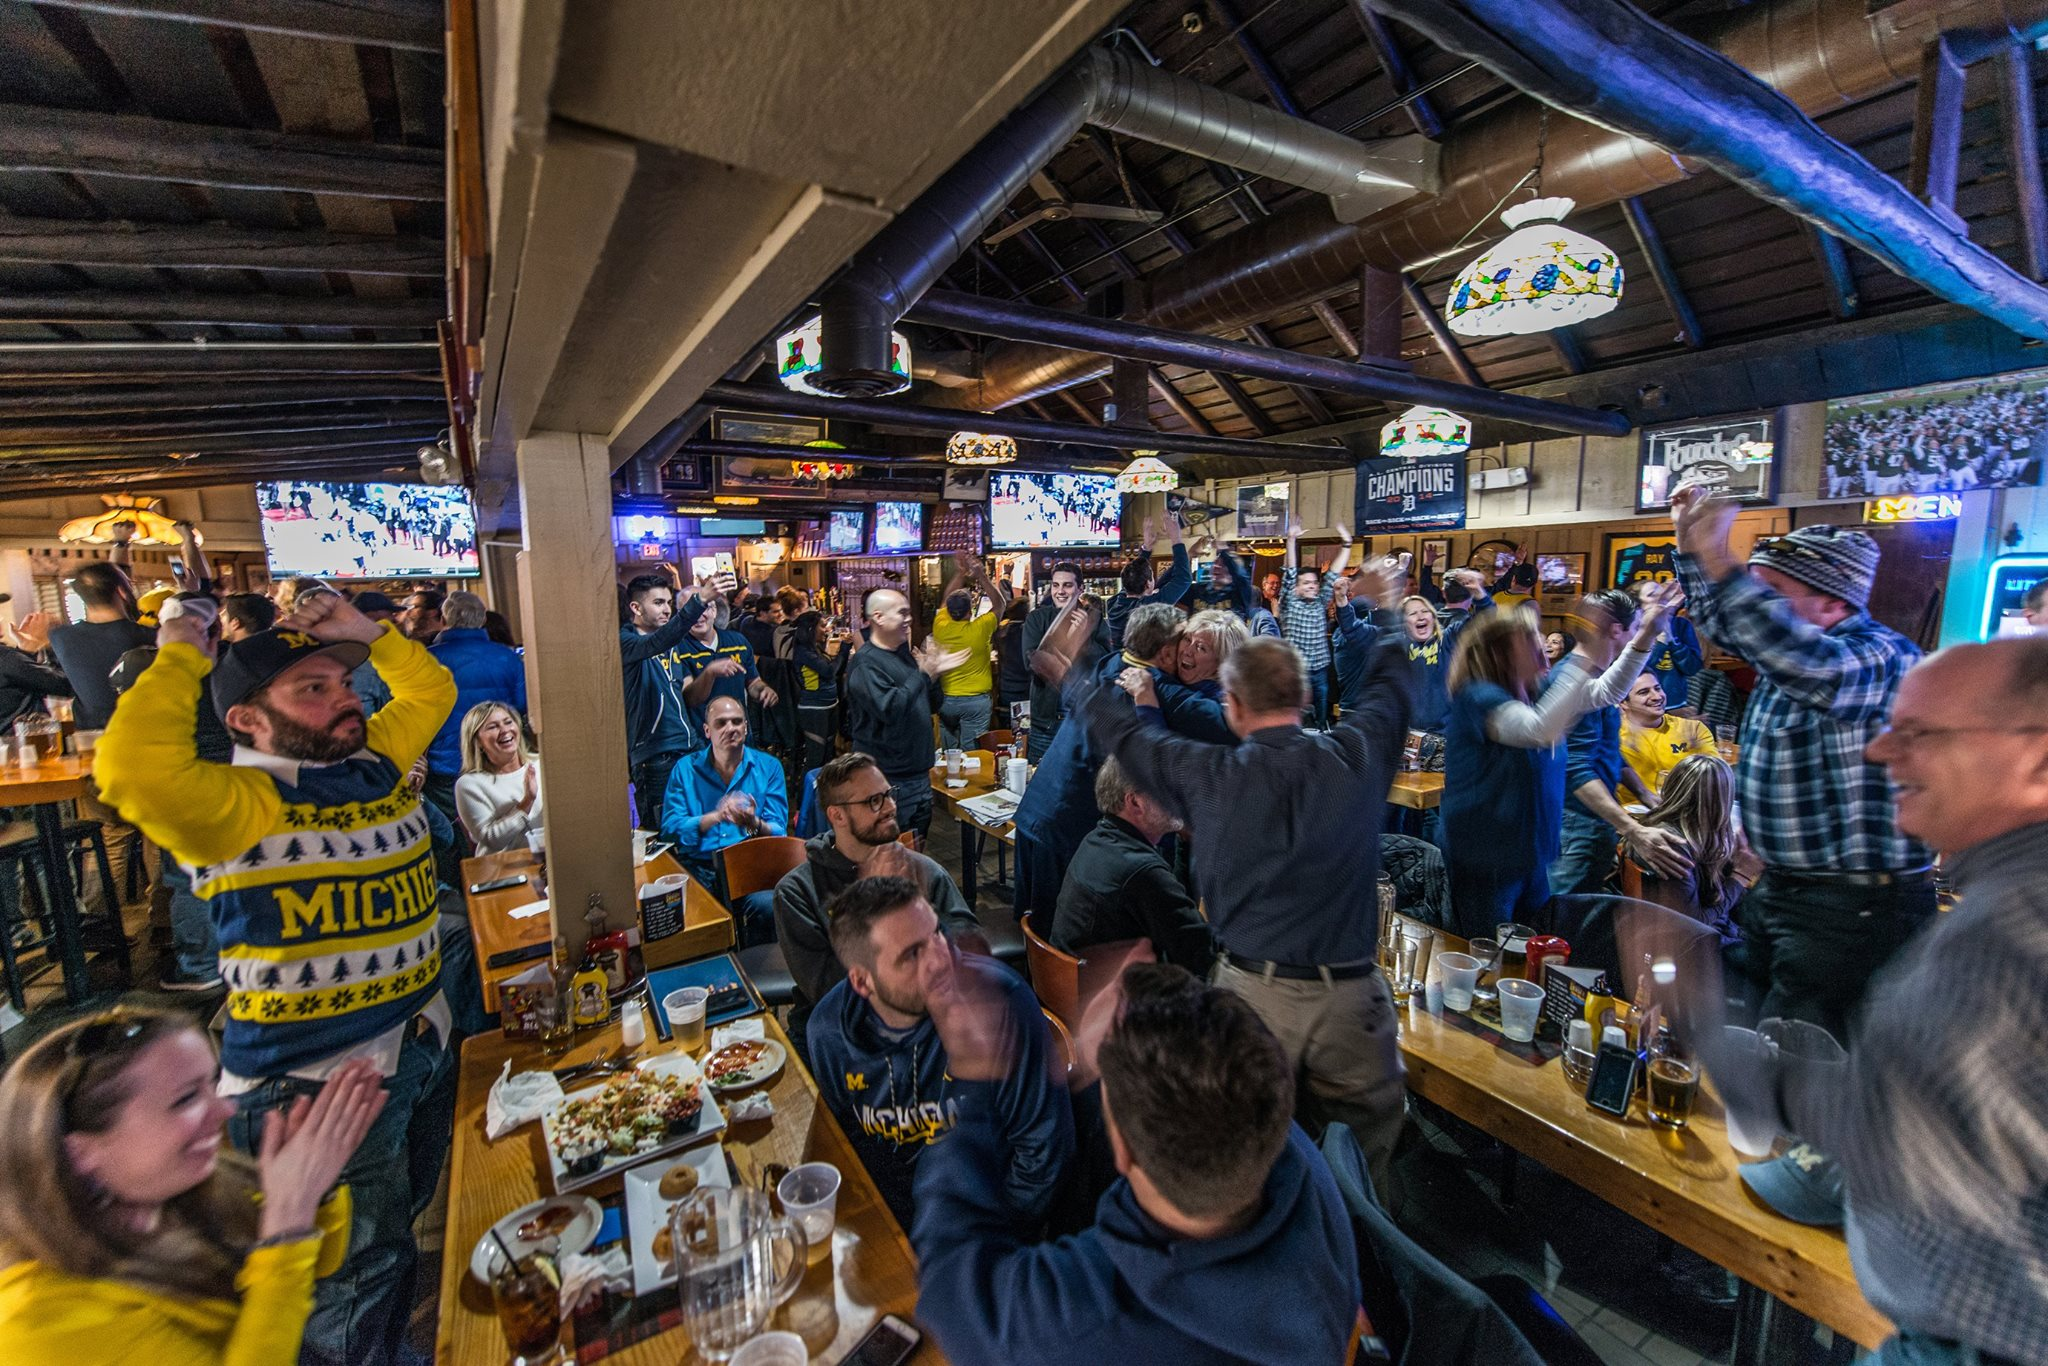 U-M fans dressed in blue and maize back the house at Fraser's Pub and cheer during a football game.